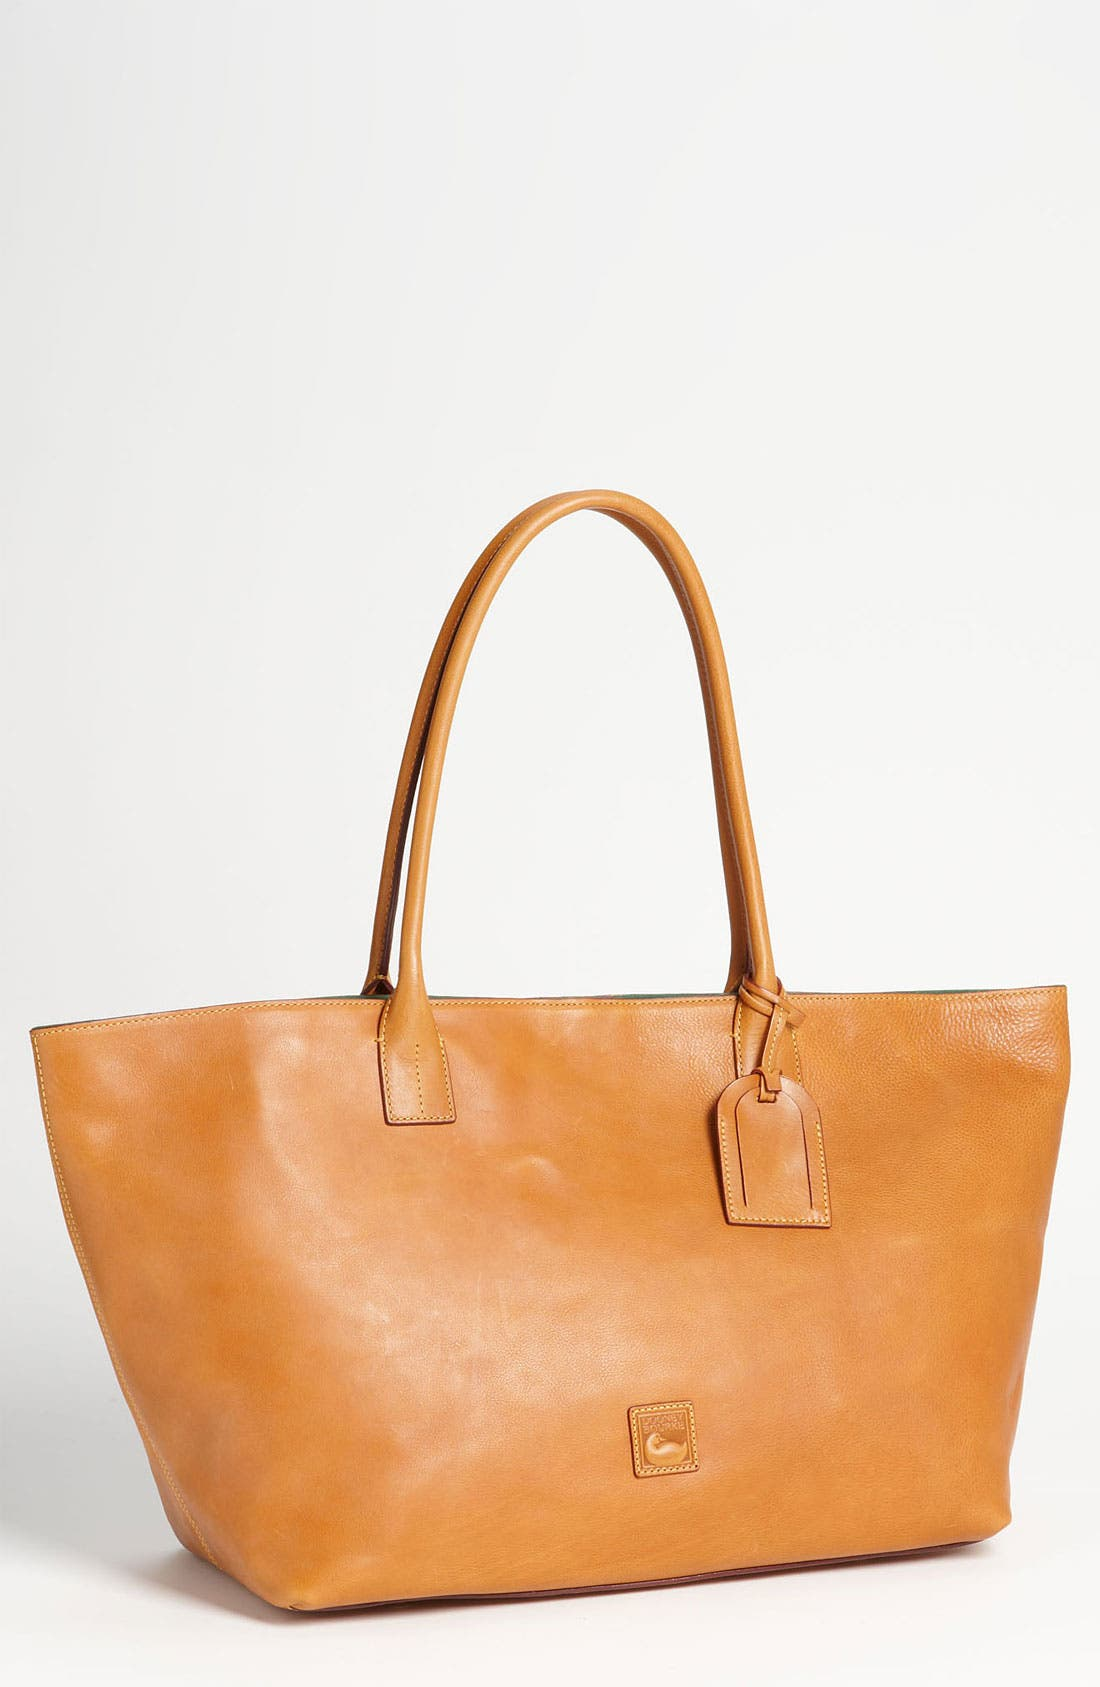 Main Image - Dooney & Bourke 'Russel - Large' Leather Tote